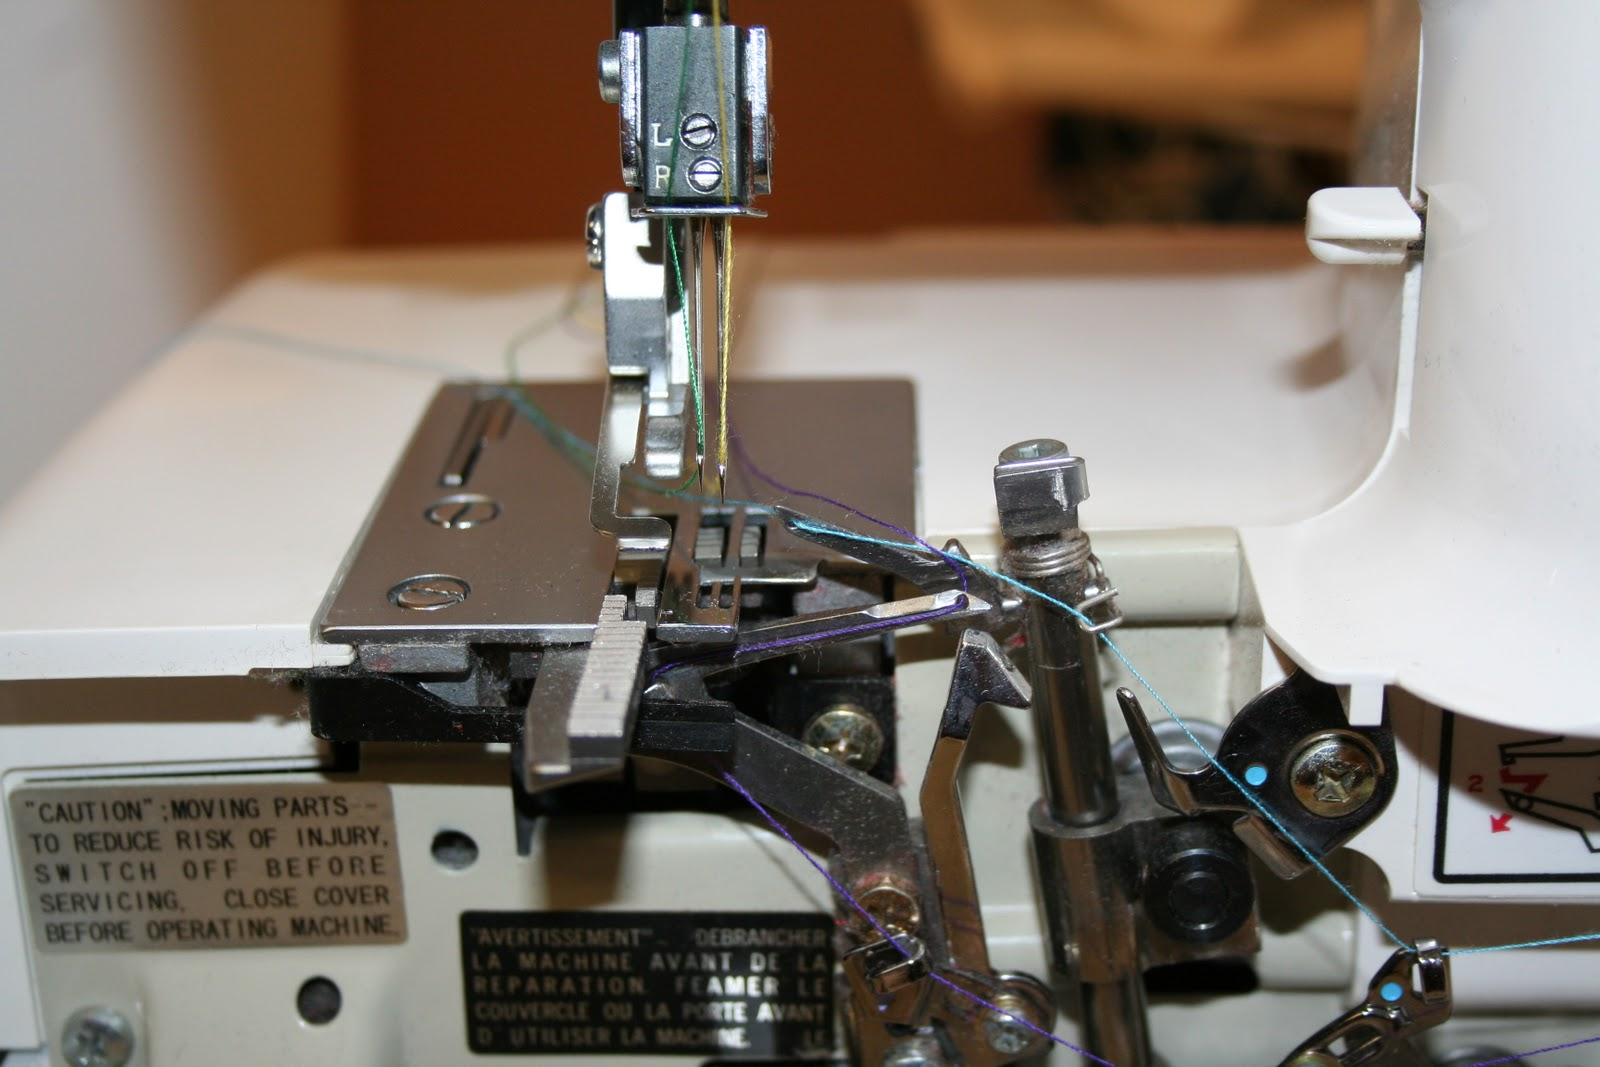 For this post, I manually threaded the loopers as well as the needles using  the same four colours of thread that the guide shows. This serger is easy  to ...